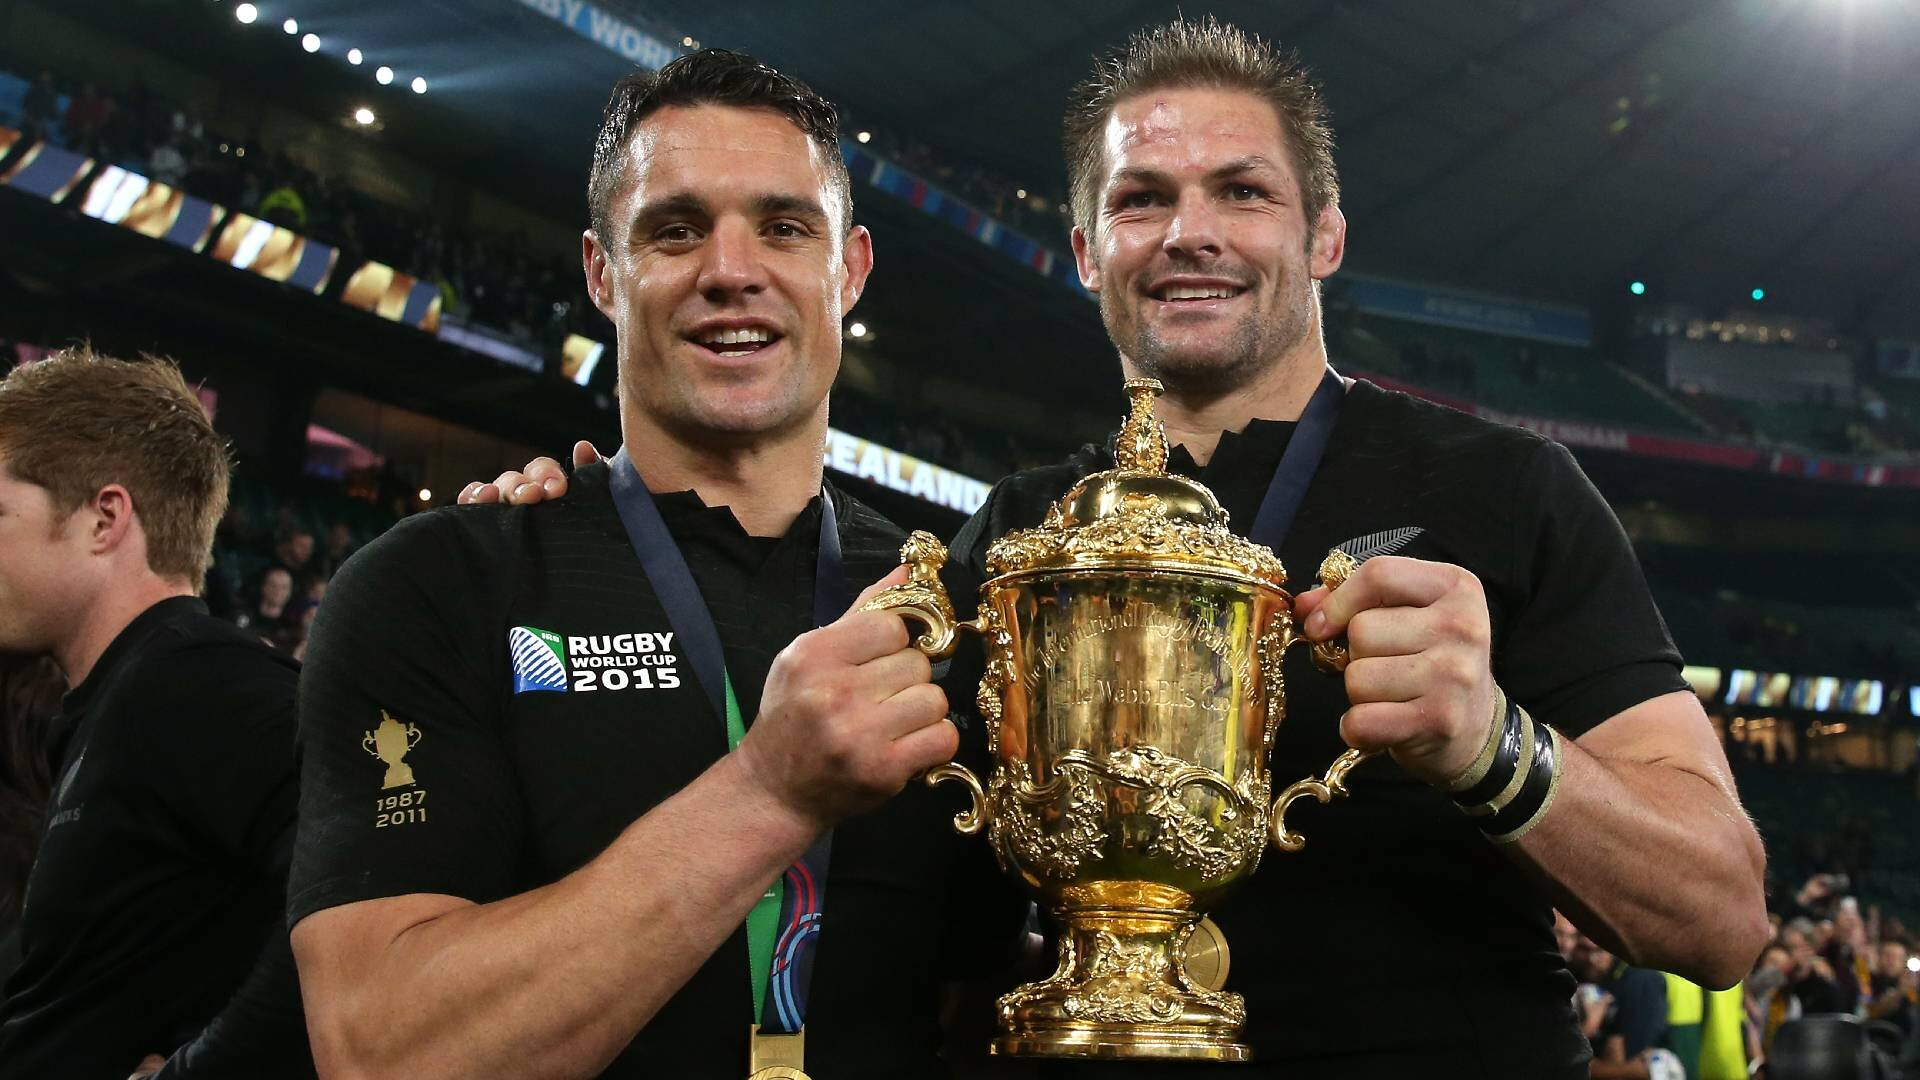 Dan Carter reveals Richie McCaw's pre-match All Blacks test obsession